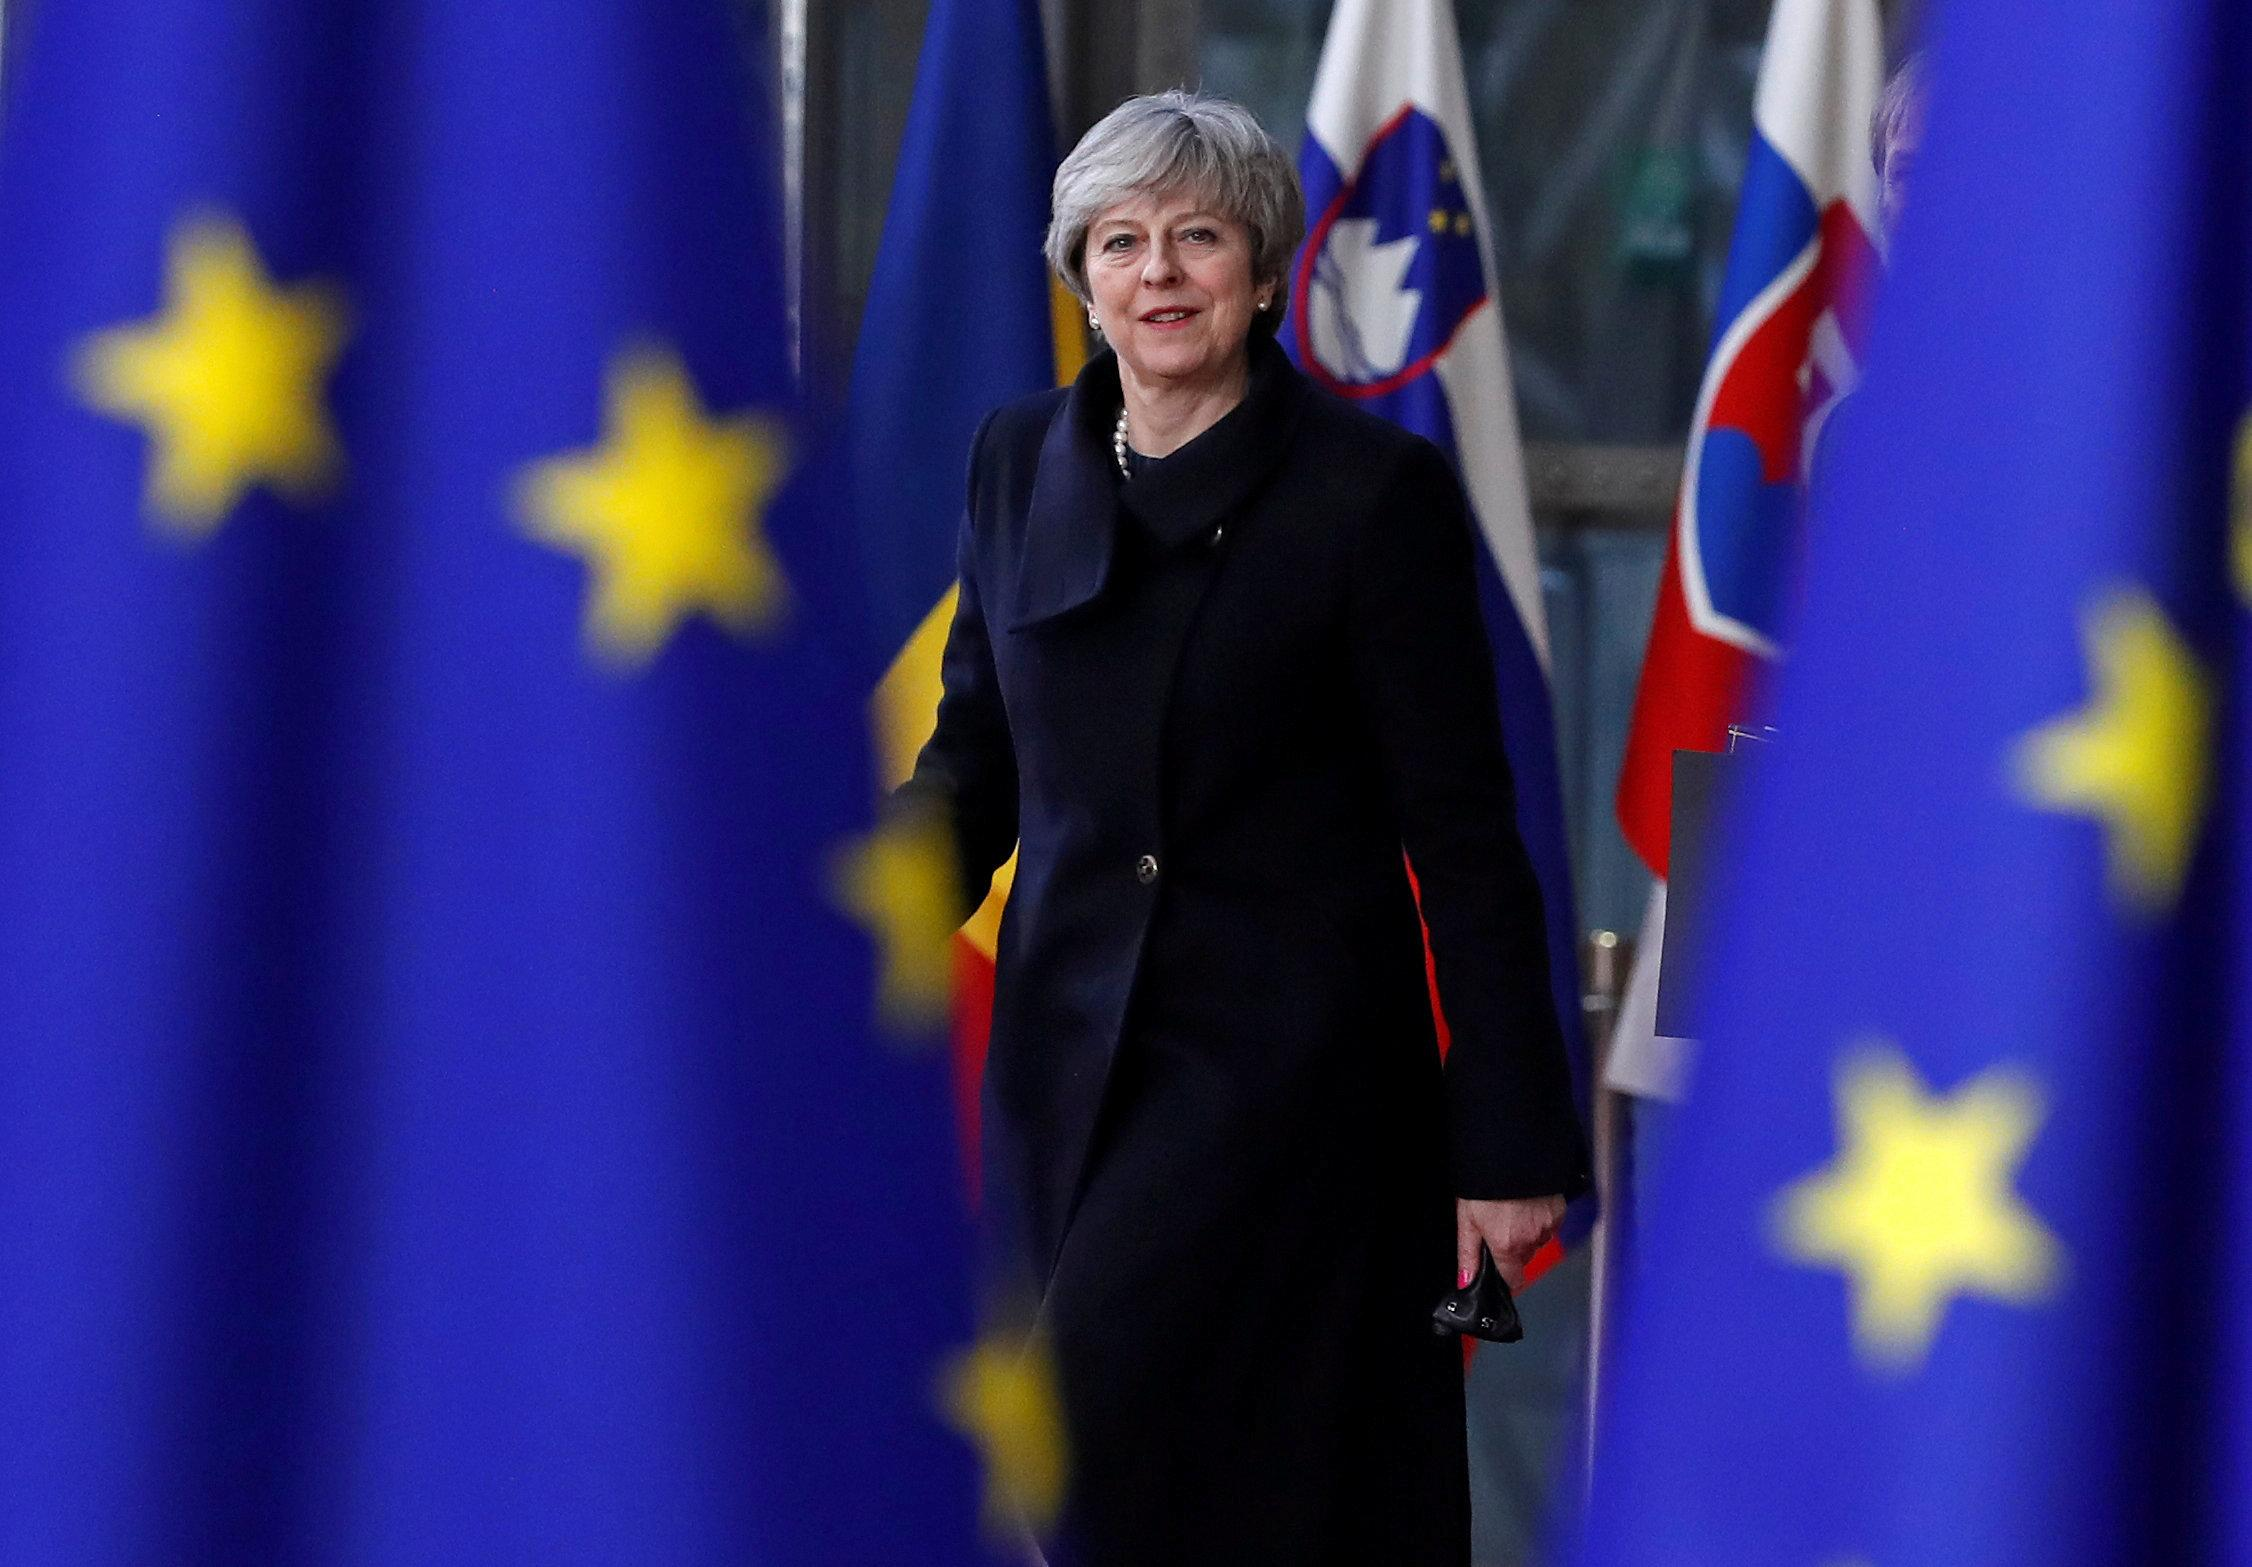 Britain's Prime Minister Theresa May arrives to attend the European Union summit in Brussels, Belgium, December 14, 2017. Yves Herman